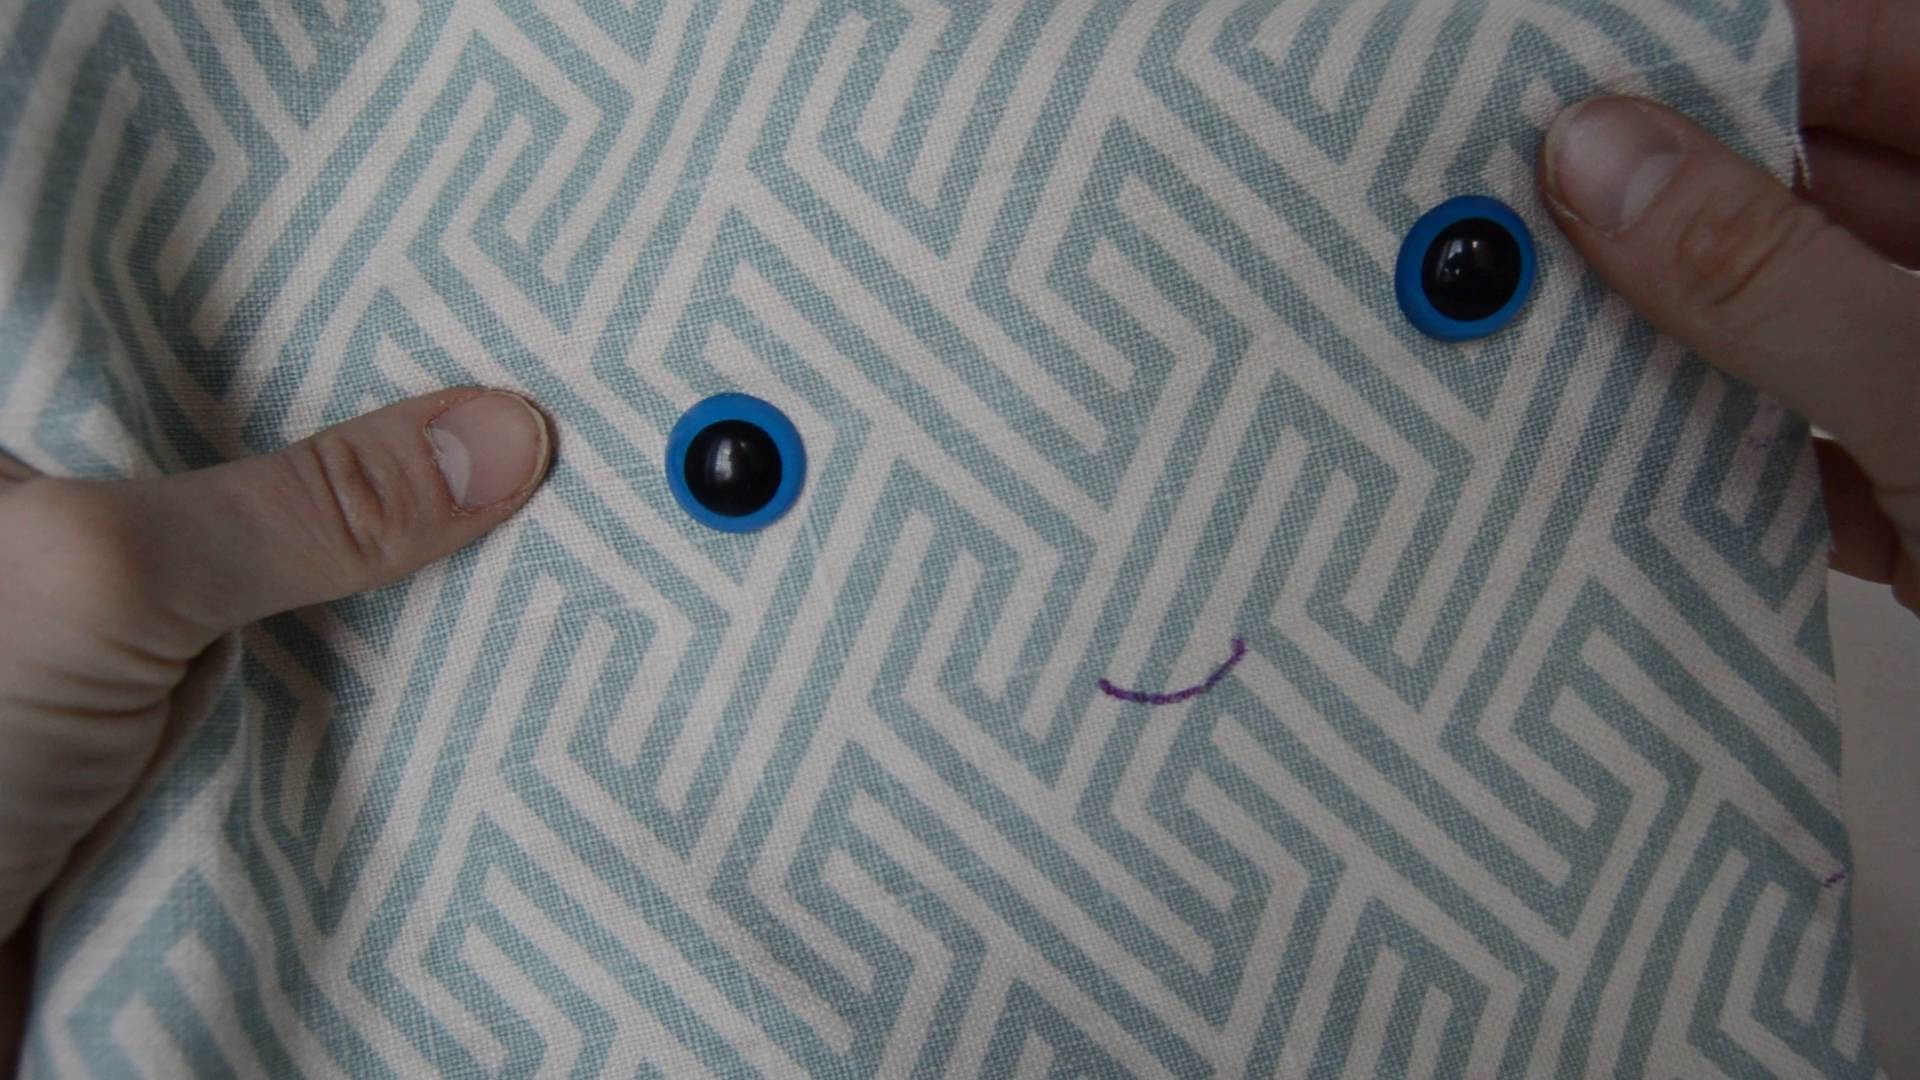 Backstitch: How to Embroider a smiley face